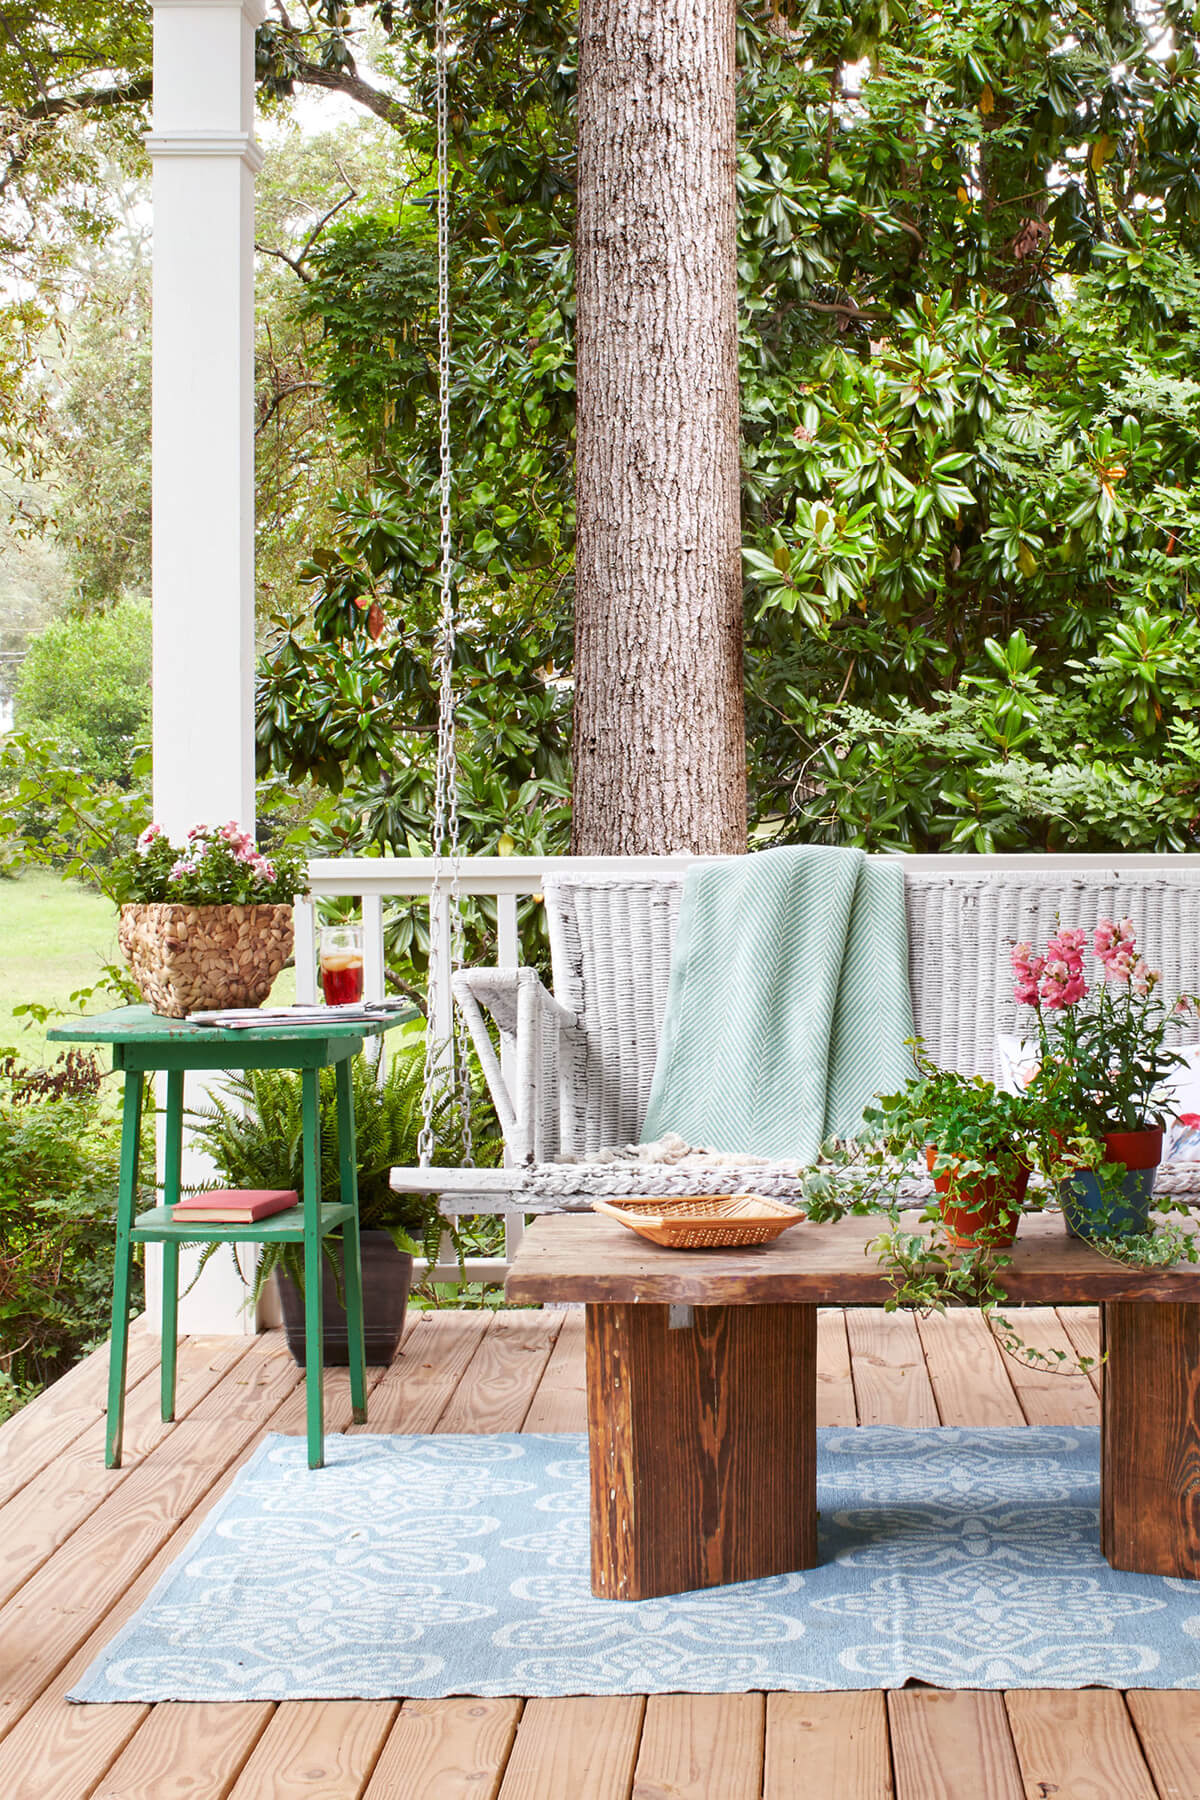 Outdoor Living Room With Wicker Porch Swing